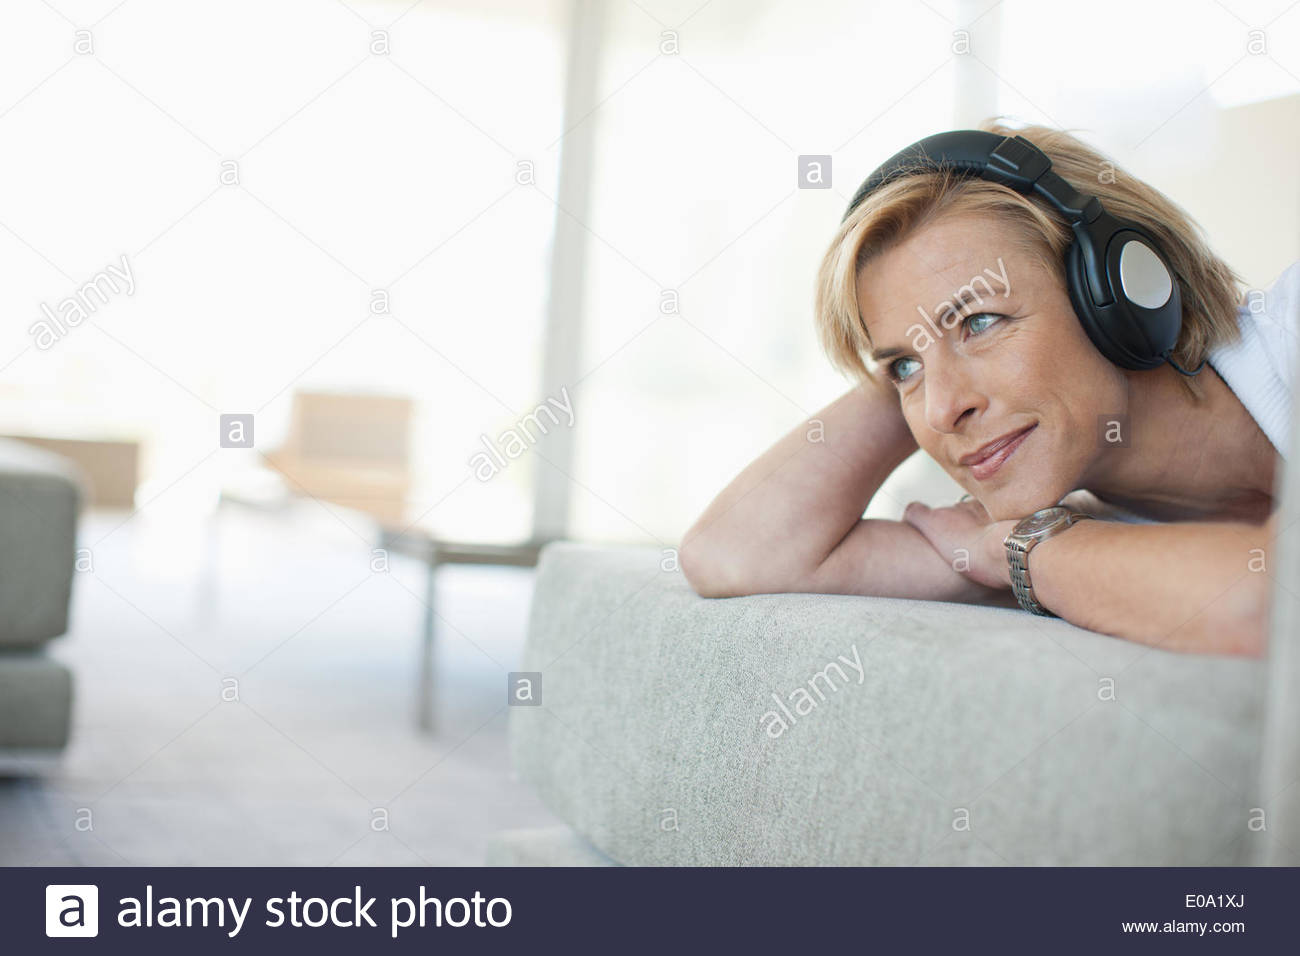 Woman laying on sofa listening to headphones - Stock Image